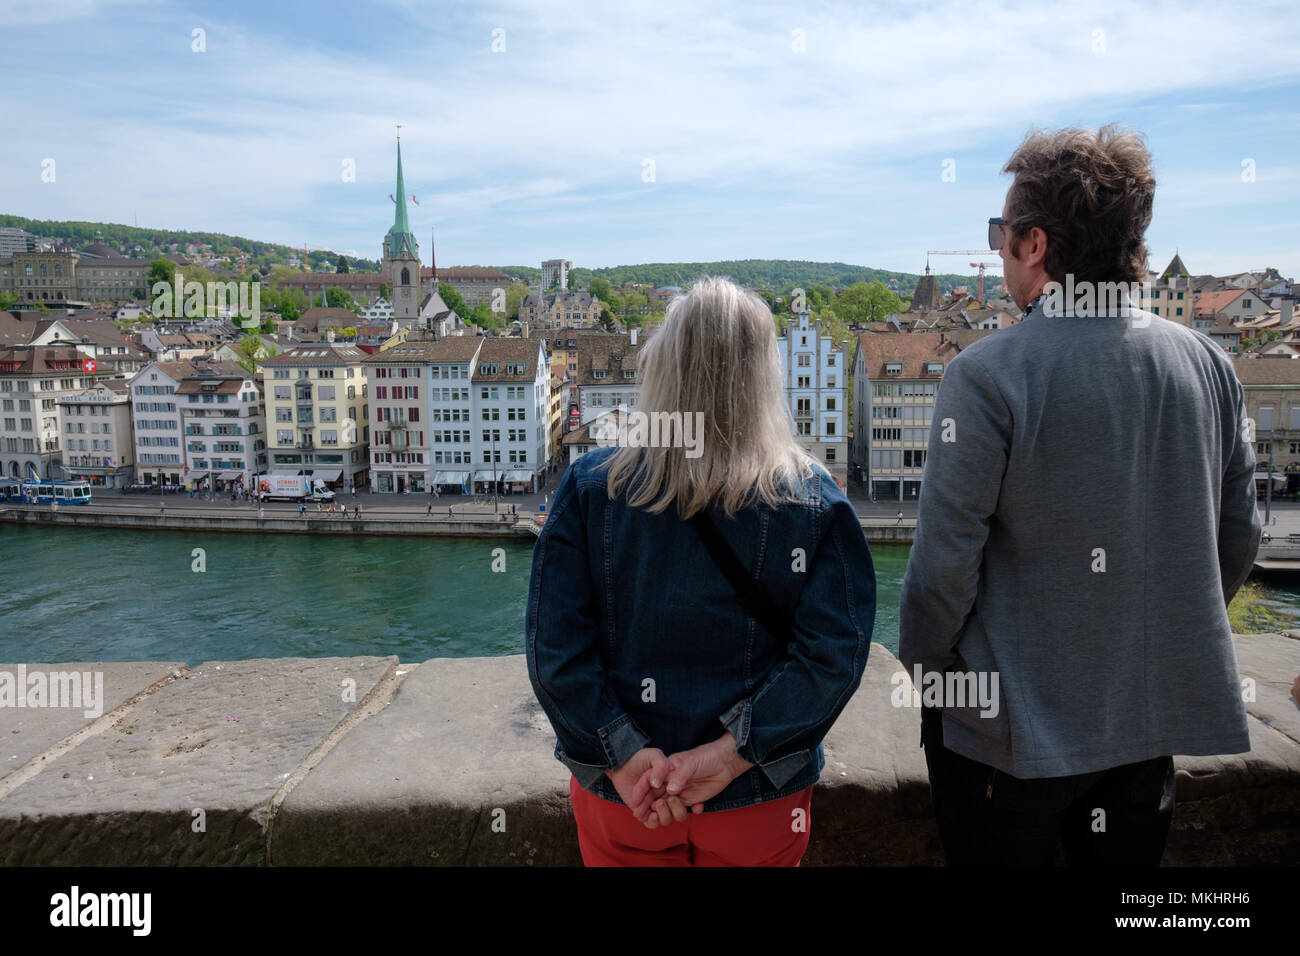 Two people looking at the skyline of Zurich from the Lindenhof hill, Switzerland, Europe - Stock Image